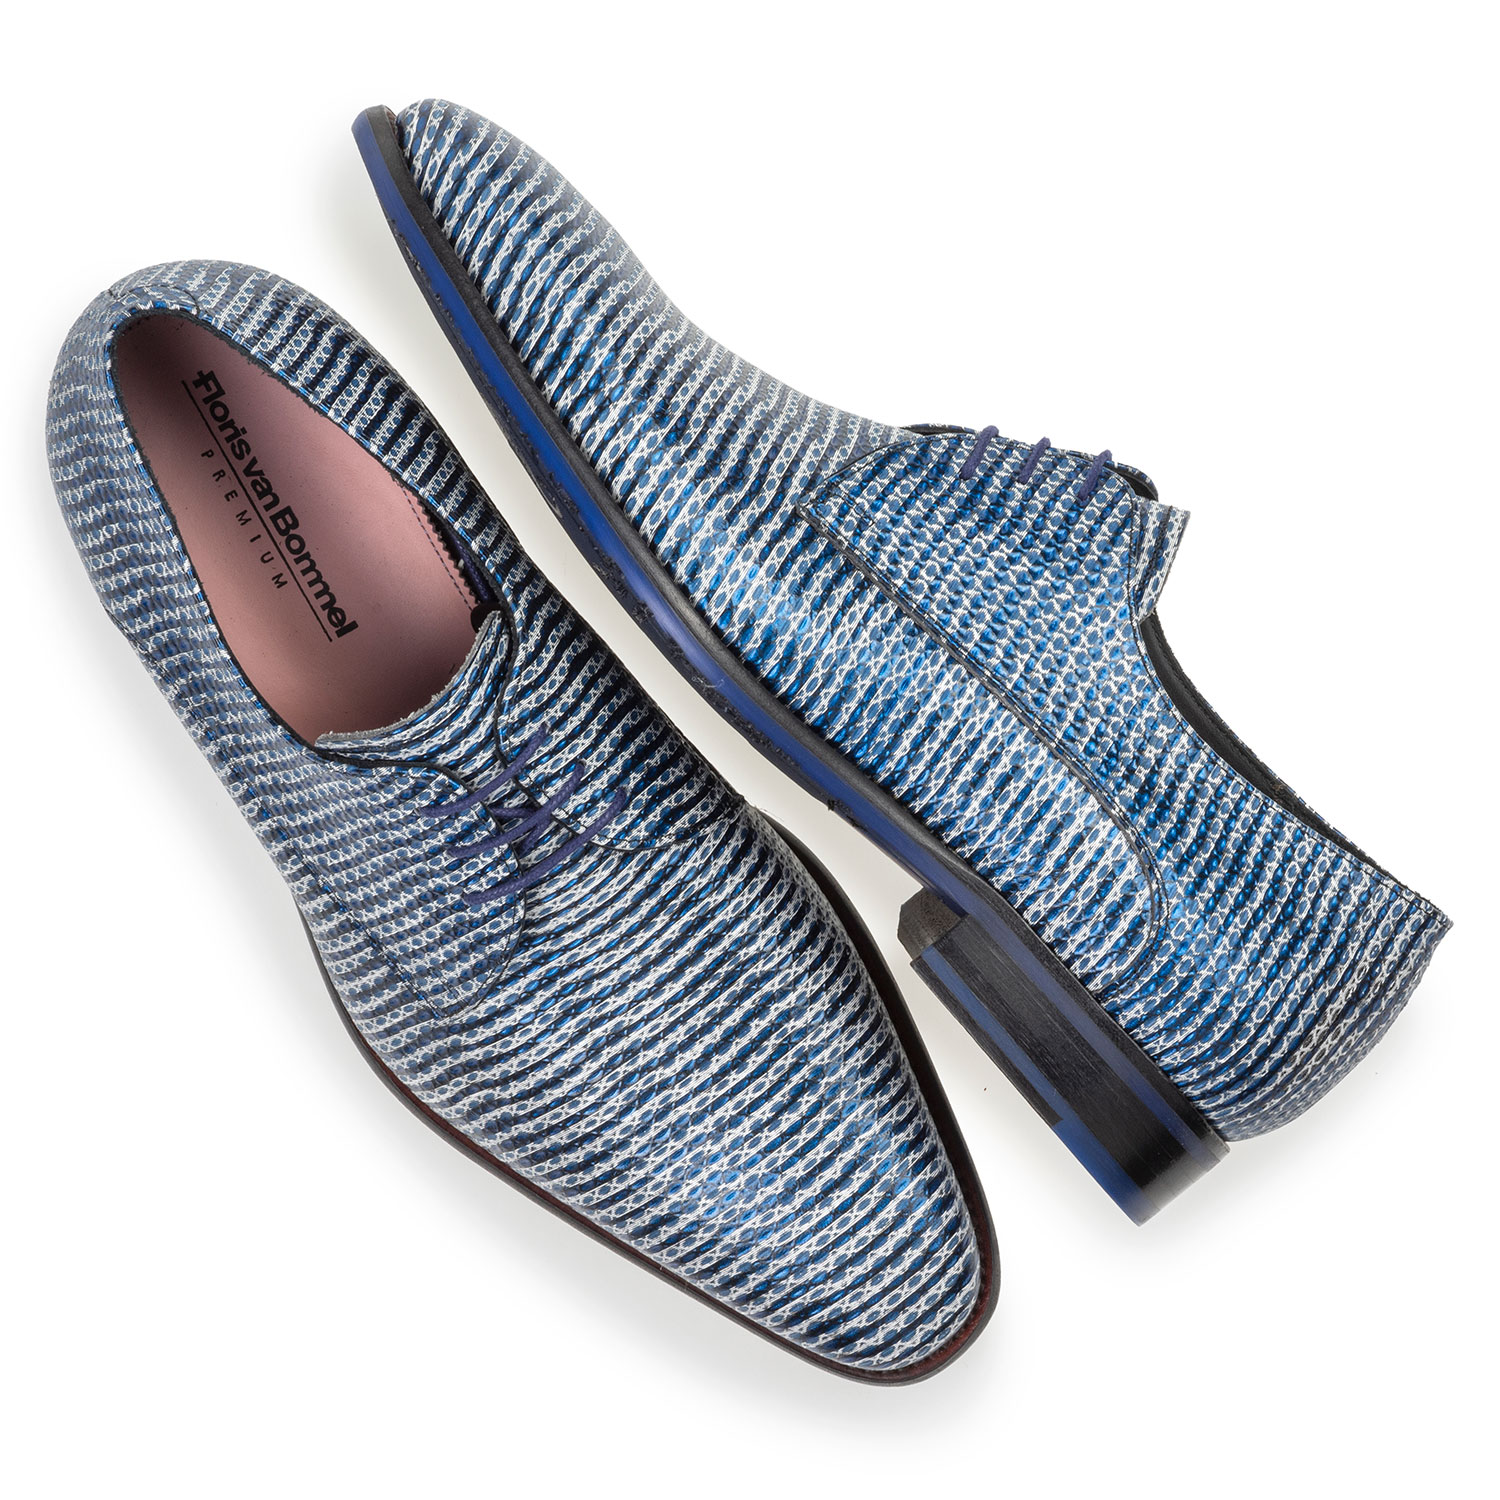 18147/01 - Lace shoe metallic with print blue